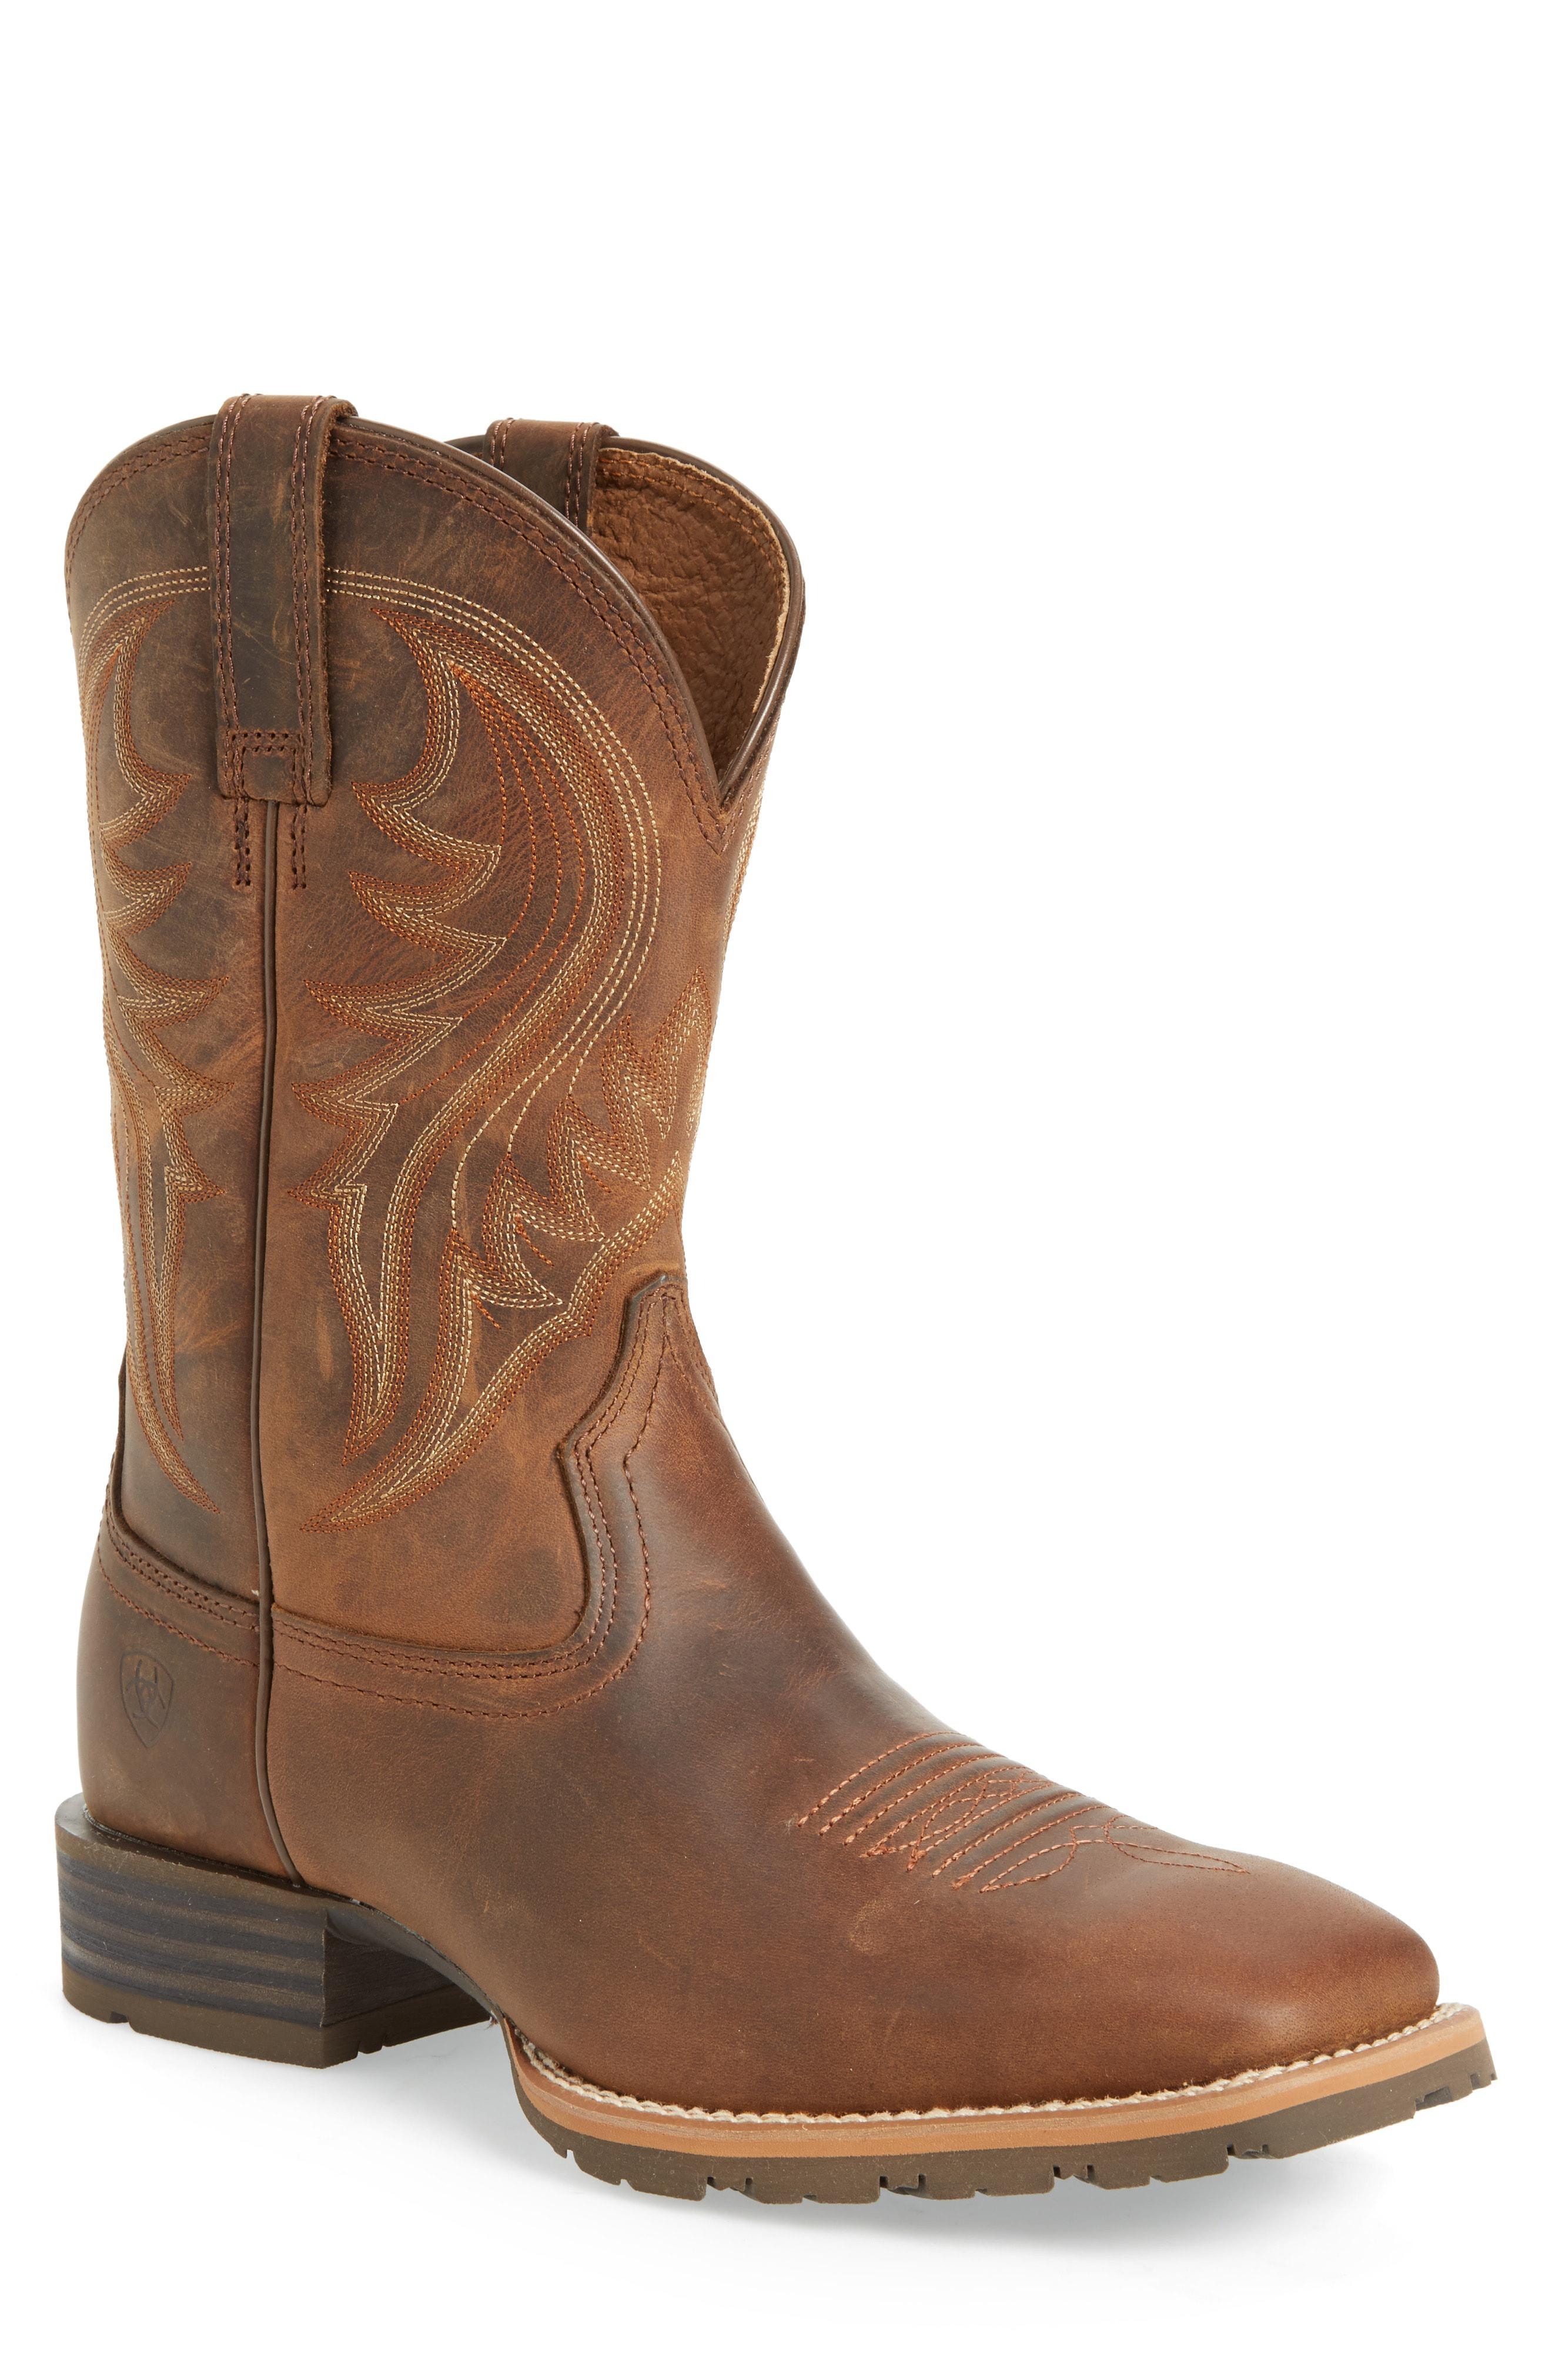 7a40107bb77 Lyst - Ariat Hybrid Rancher Cowboy Boot in Brown for Men